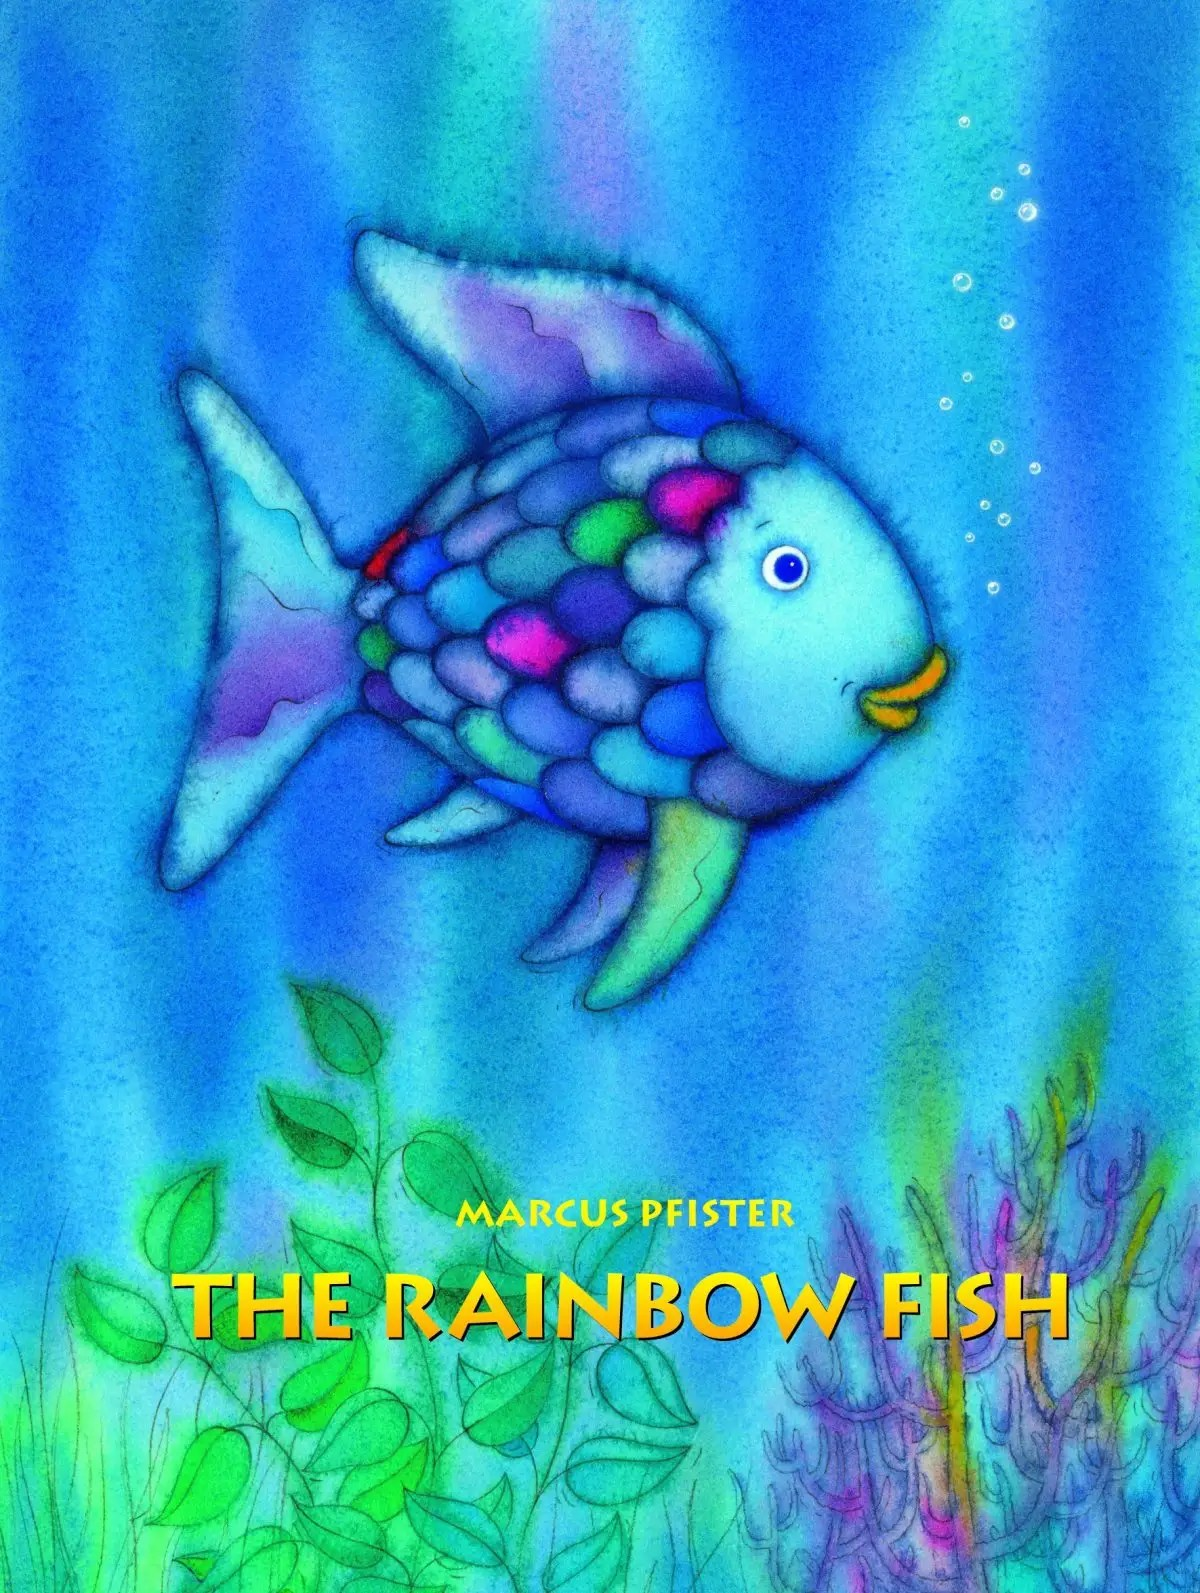 'The Rainbow Fish' by Marcus Foster